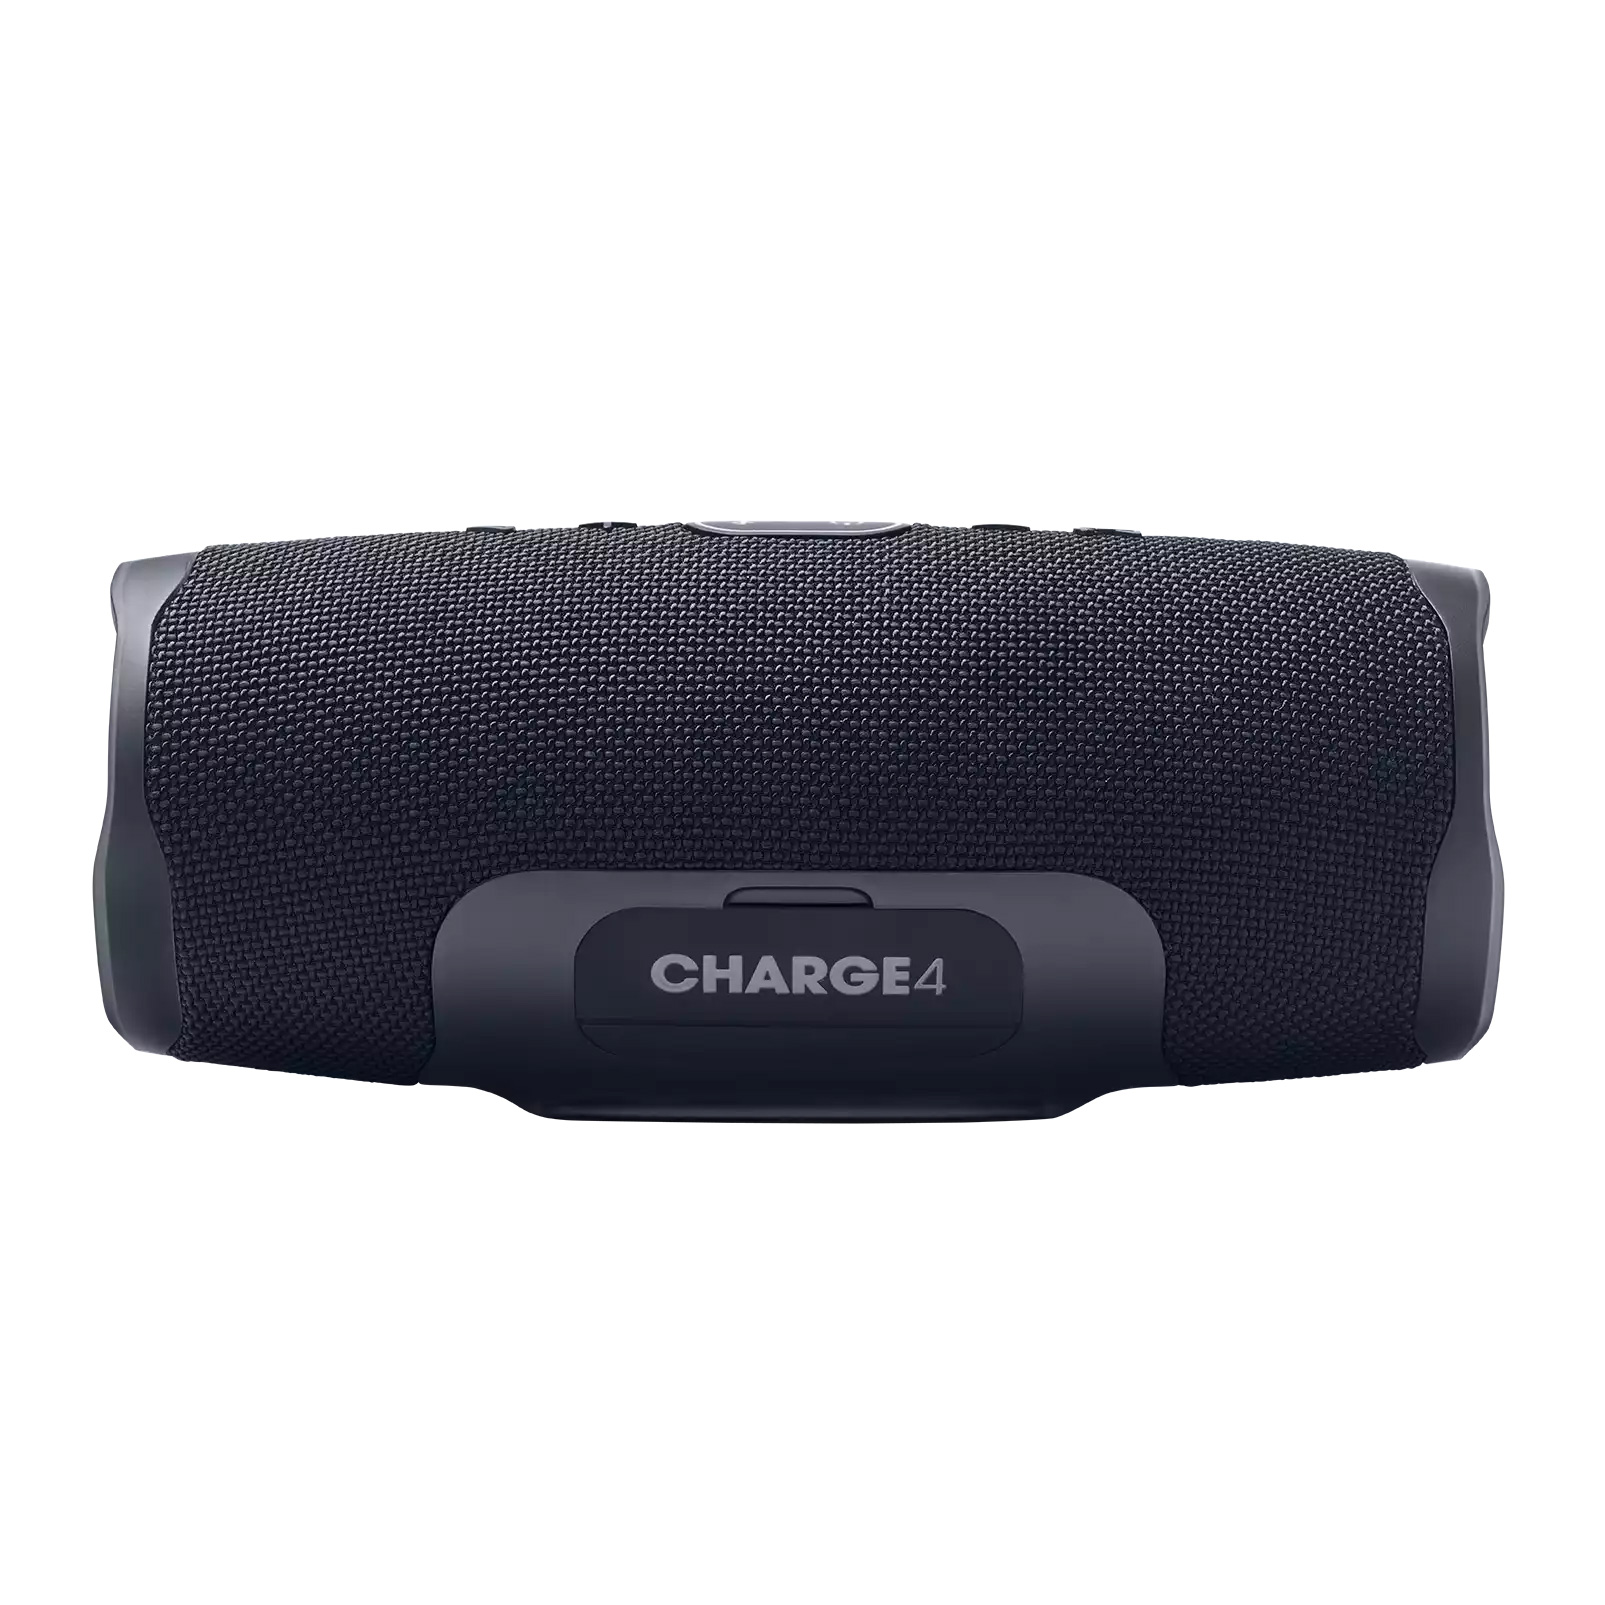 JBL_Charge4_Back_Midnight_Black_1605x1605px